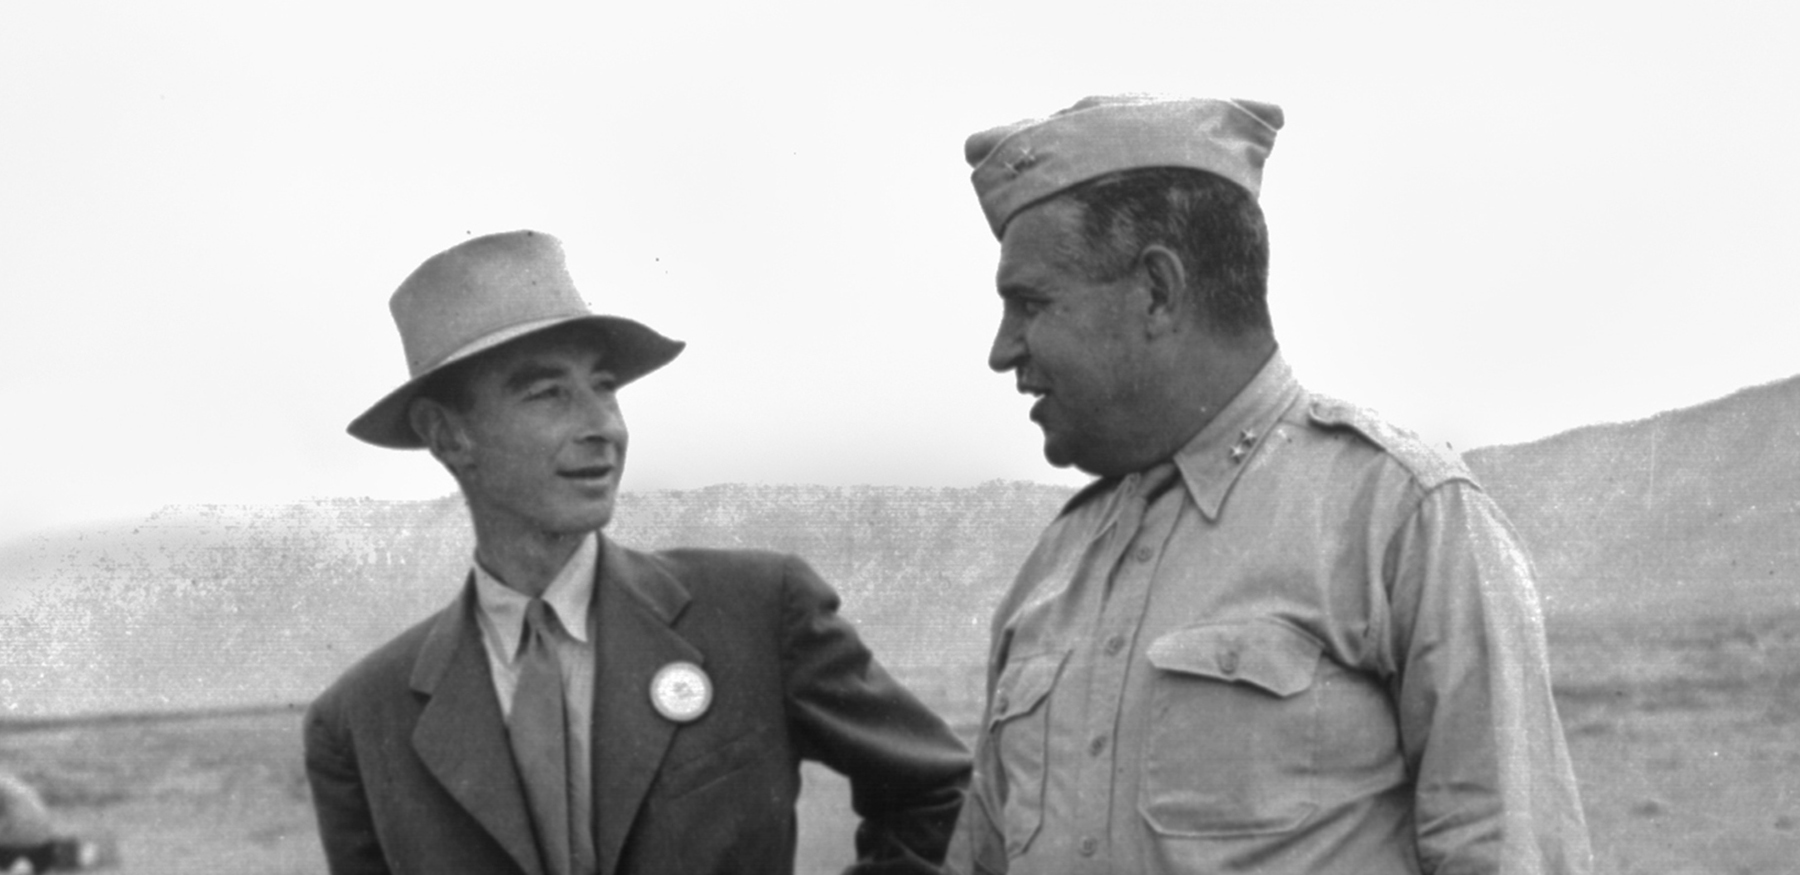 J. Robert Oppenheimer and General Leslie R. Groves